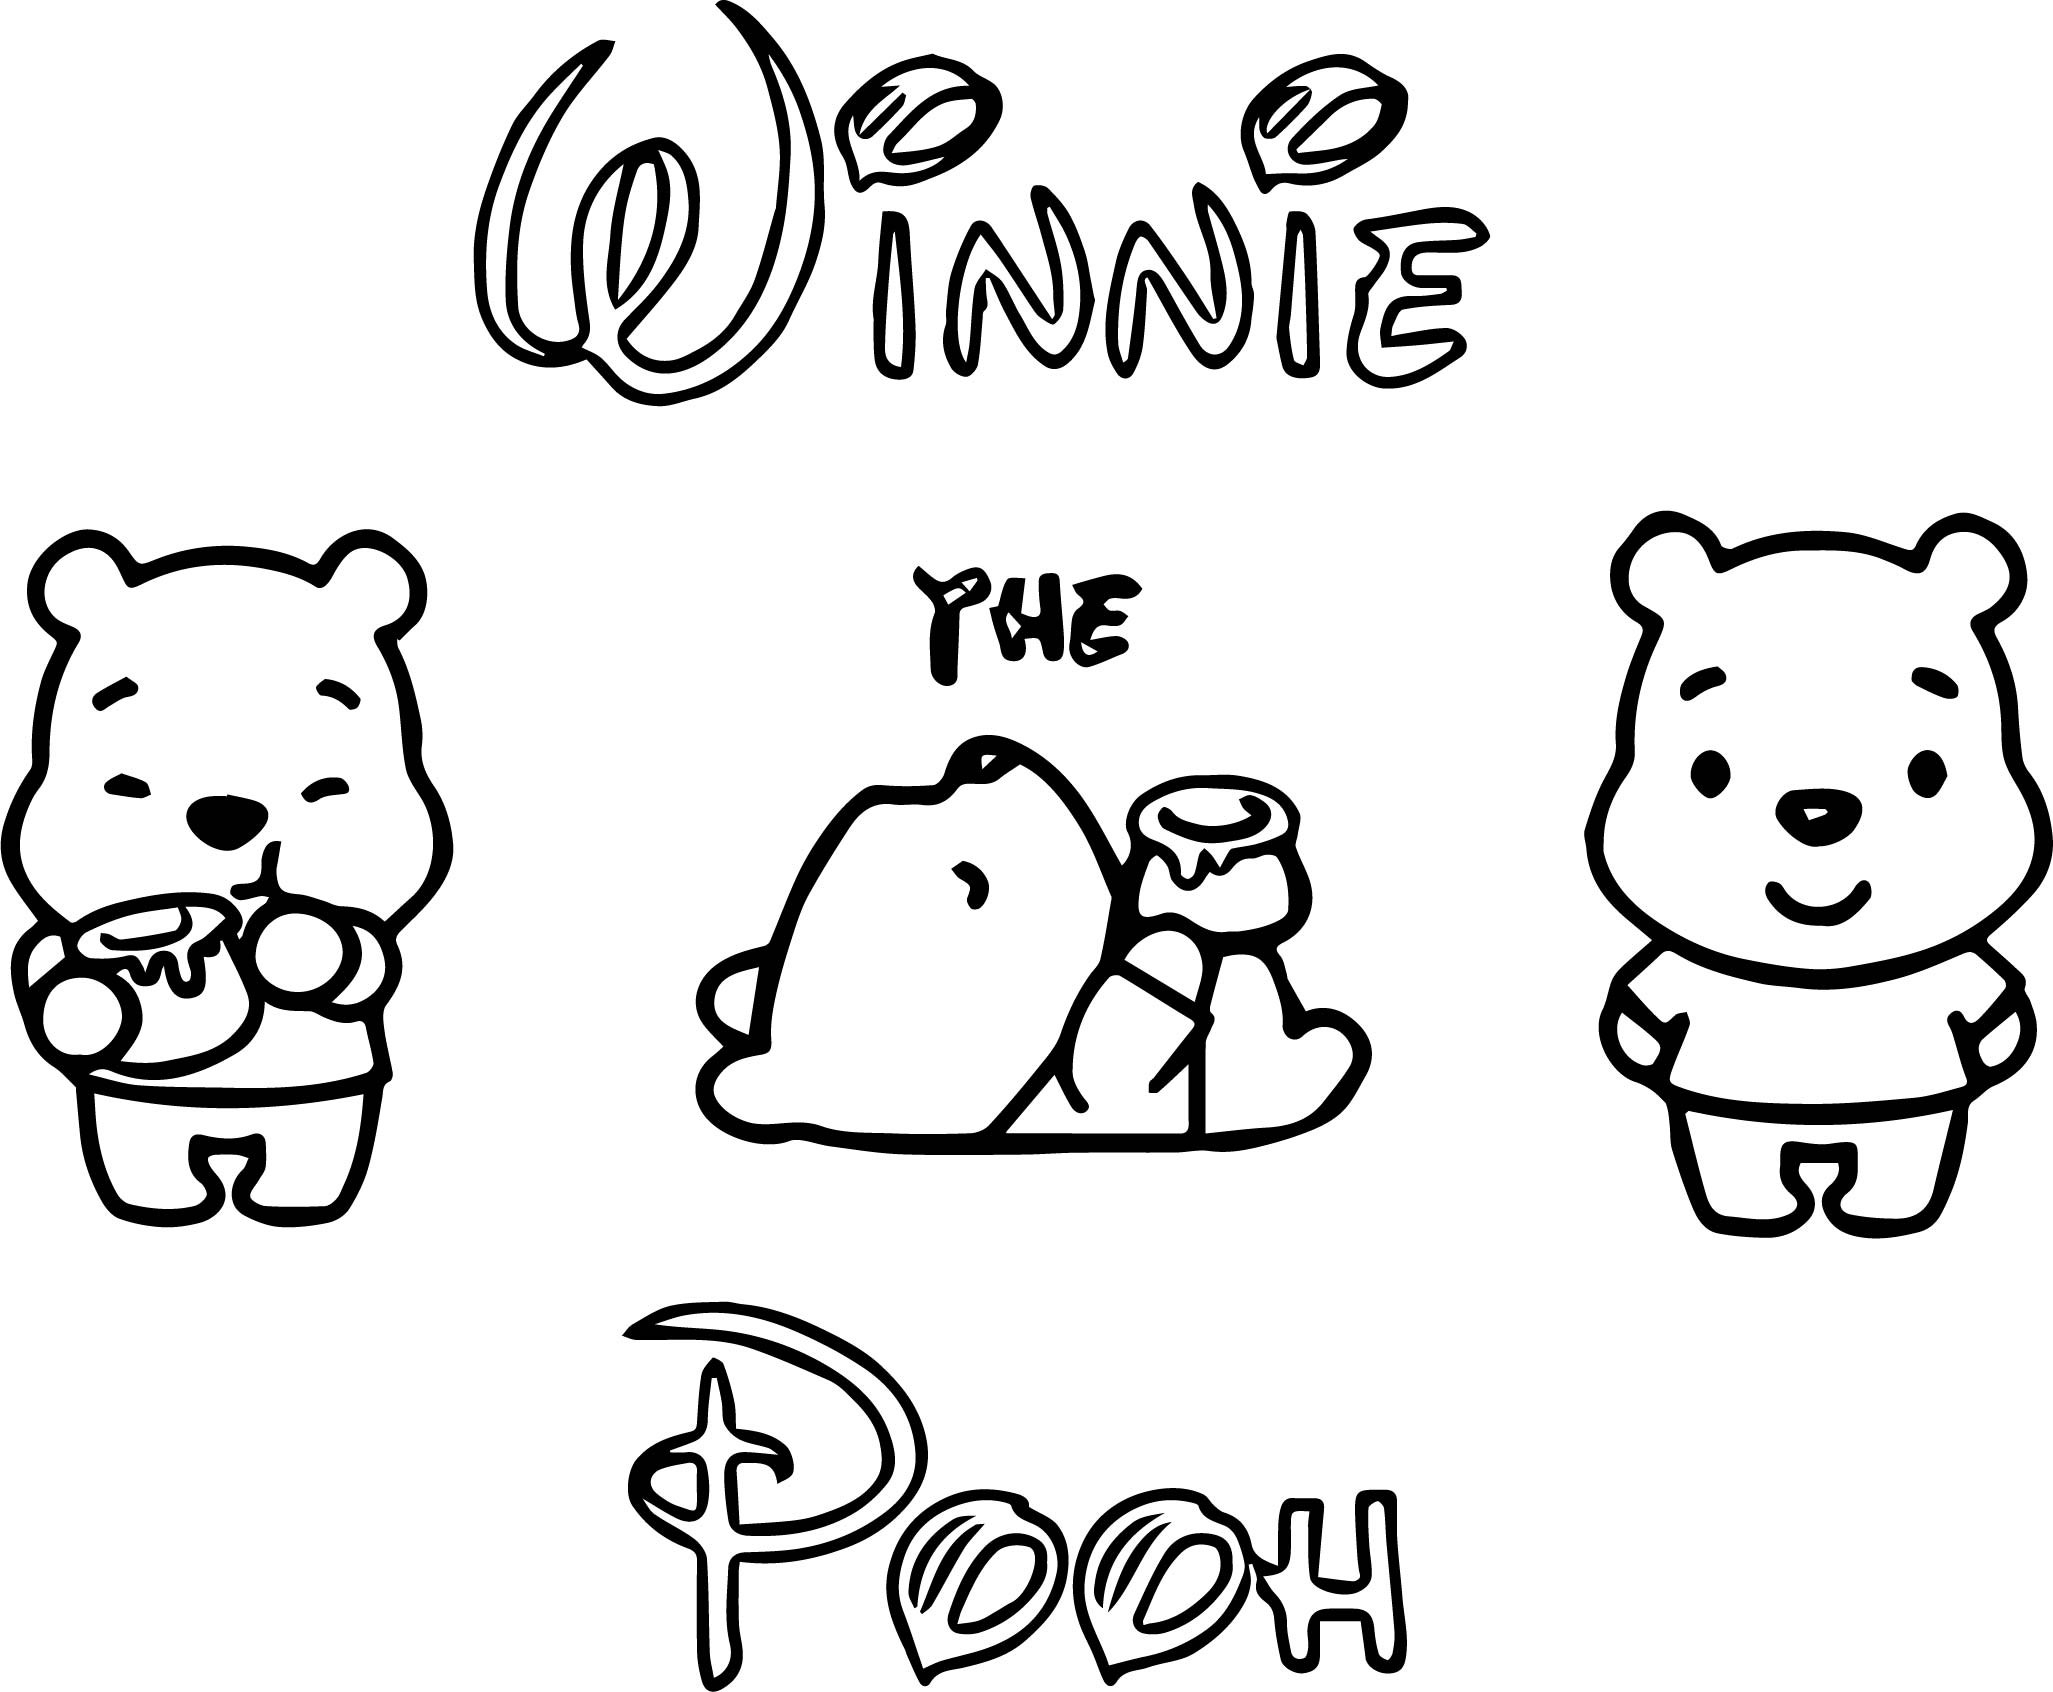 2053x1692 Fresh Disney Cuties Coloring Pages In Coloring Pages For Adults